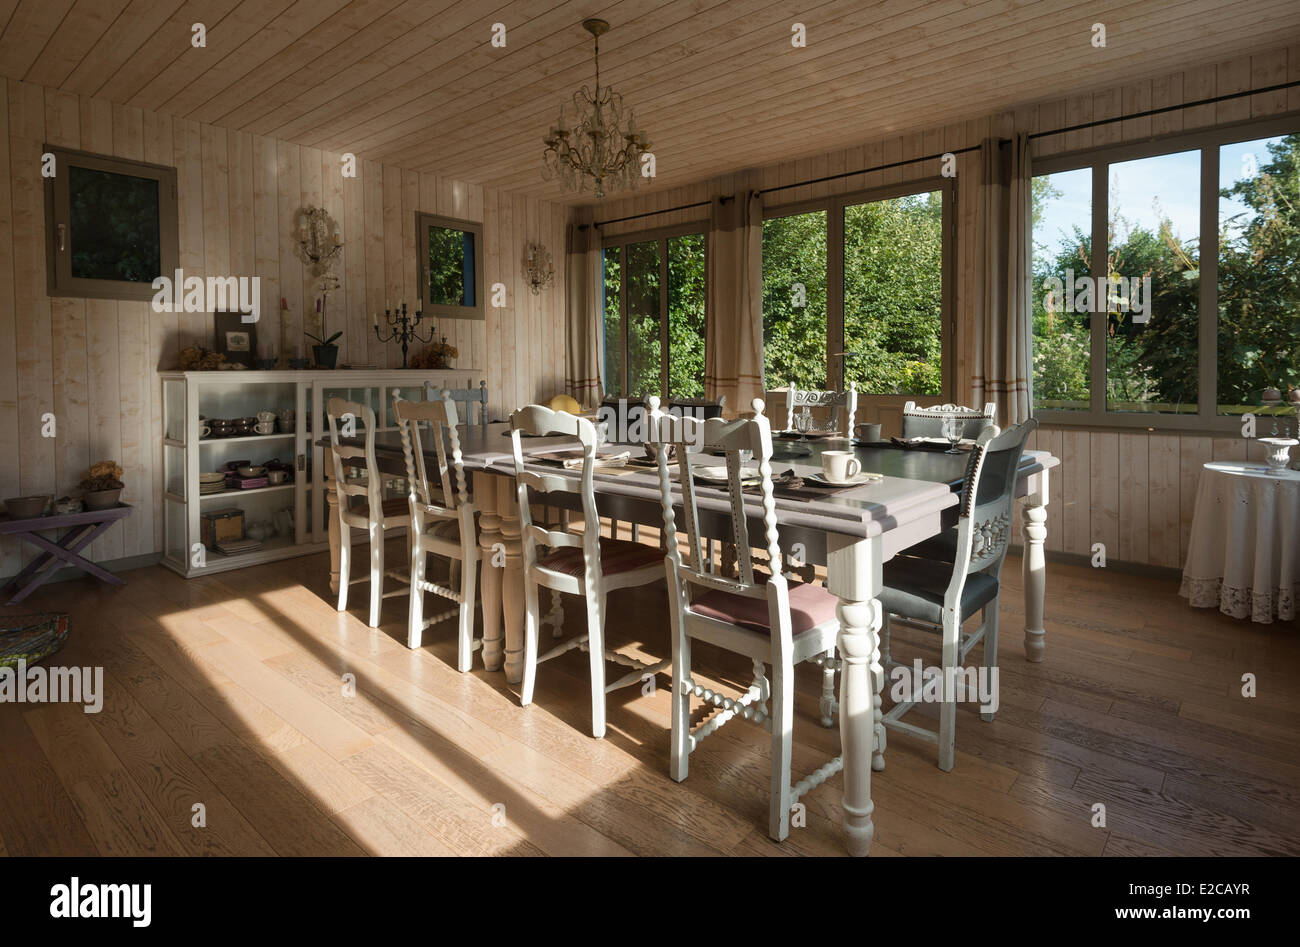 Jardin Interior Stockfotos & Jardin Interior Bilder - Alamy